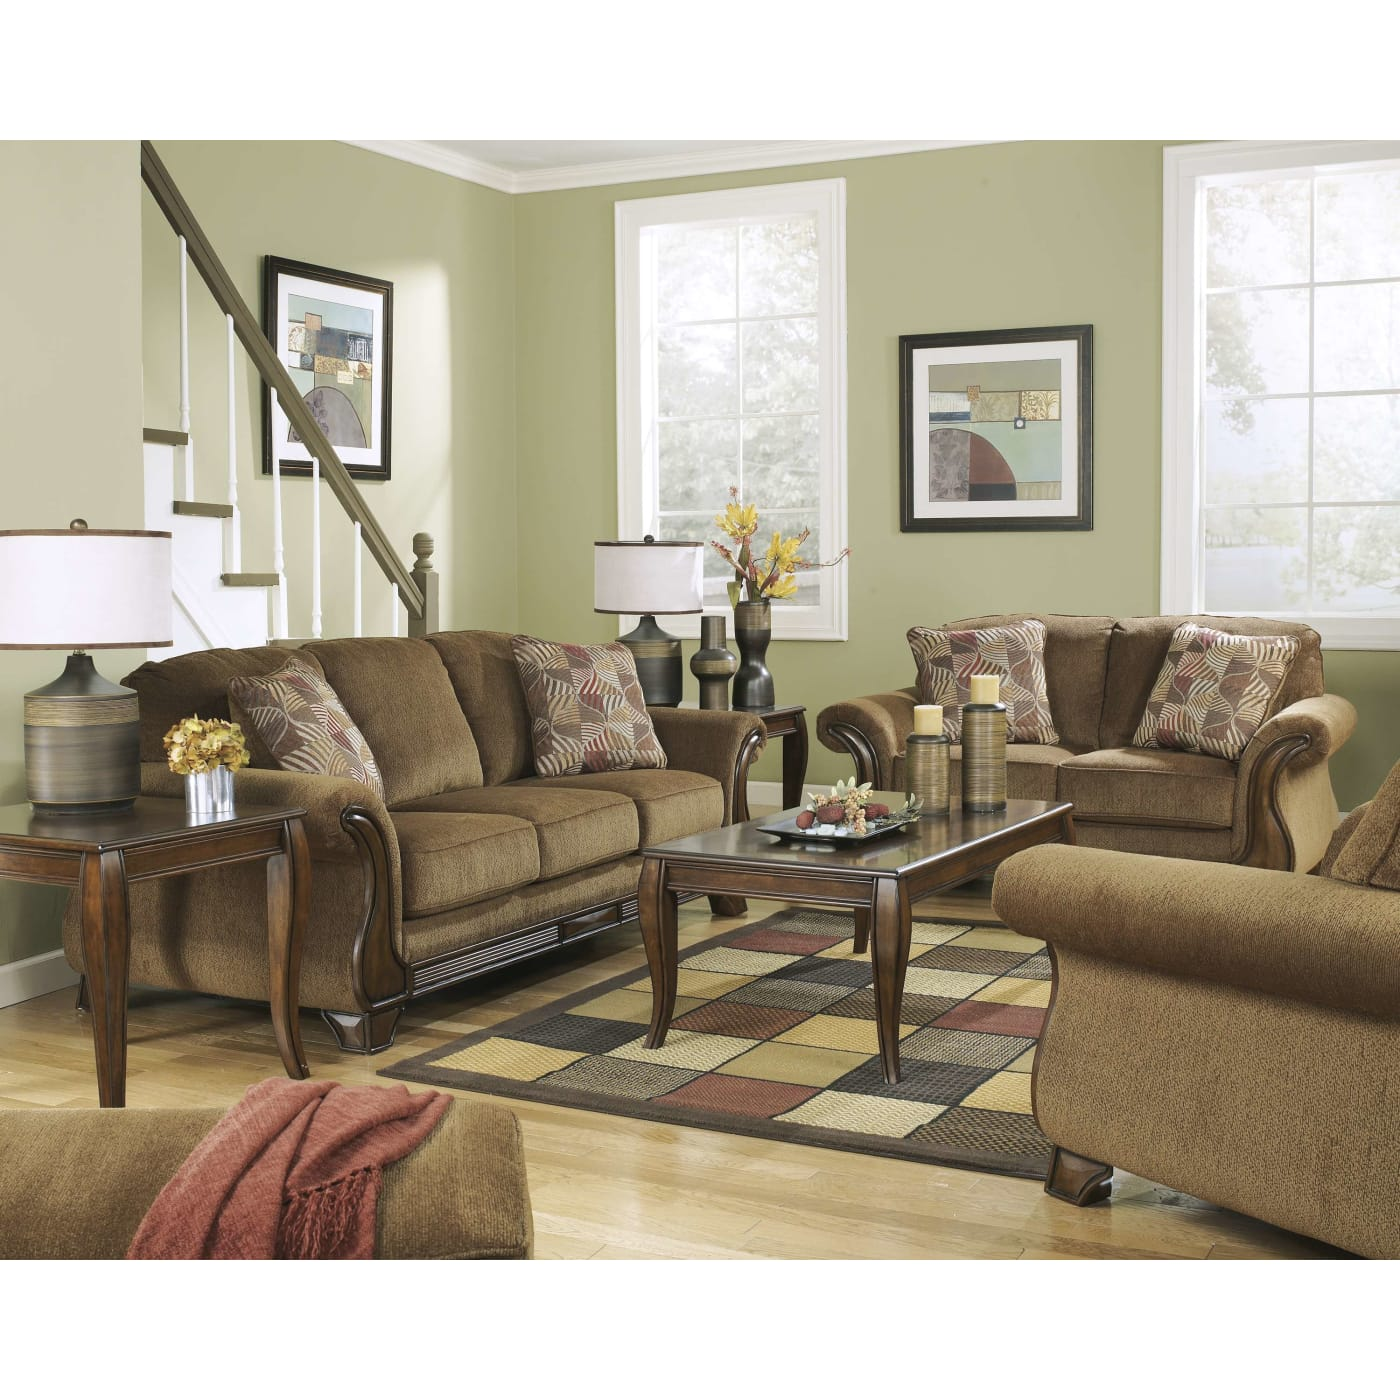 Ashley Furniture 14 Piece Package: Signature Design By Ashley Montgomery Mocha 3 Piece Living